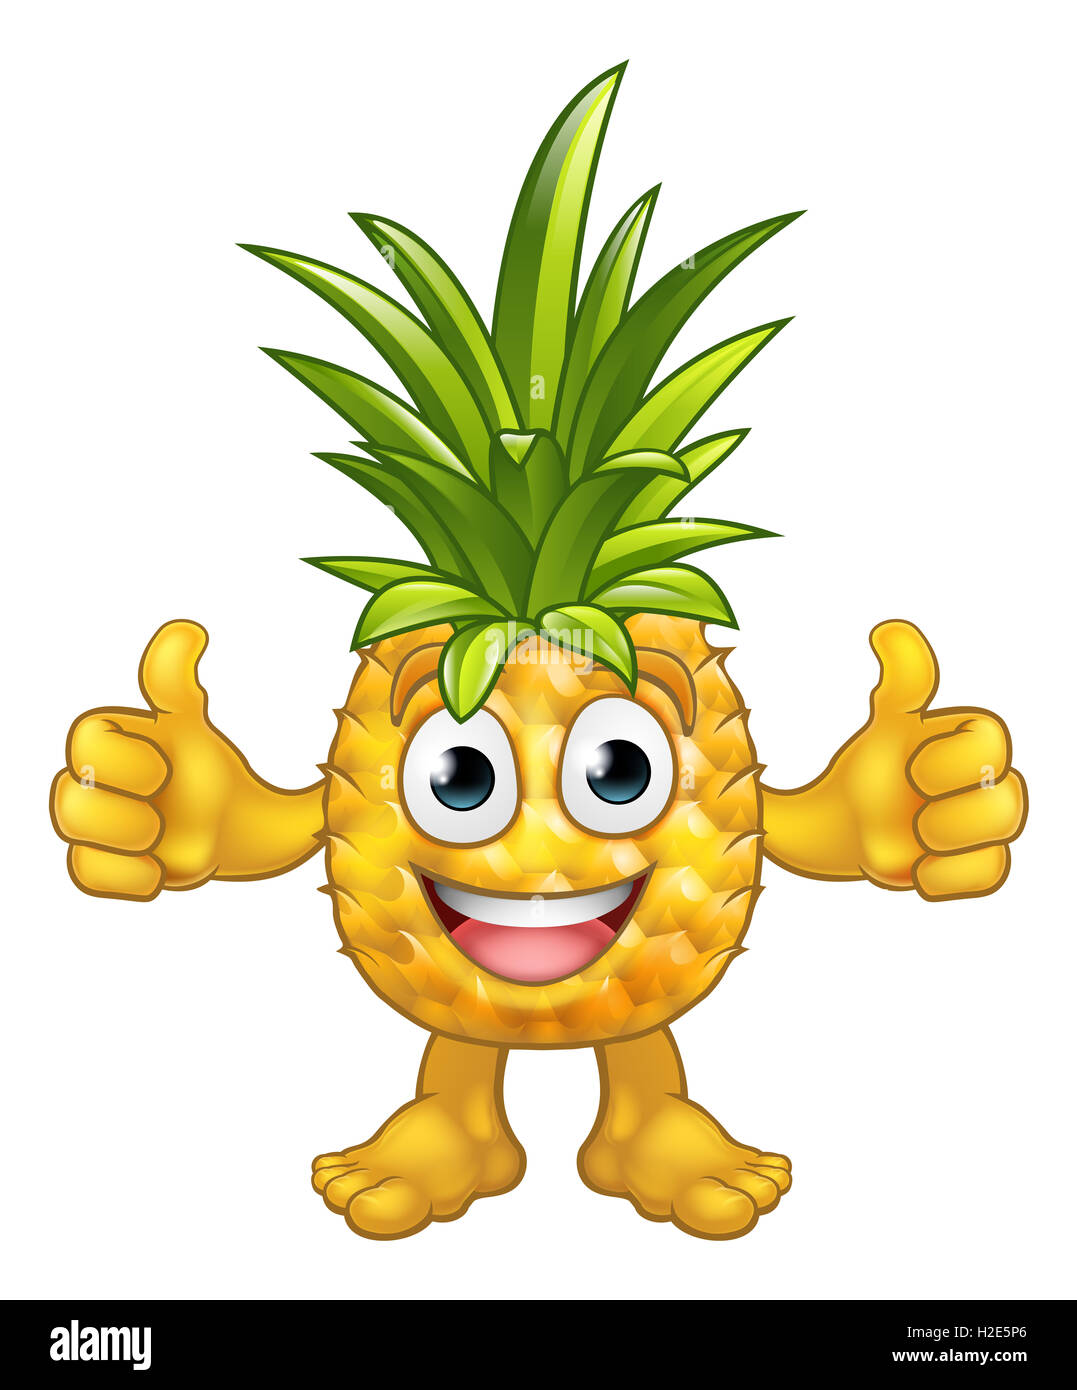 a fruit cartoon pineapple mascot character giving a thumbs up